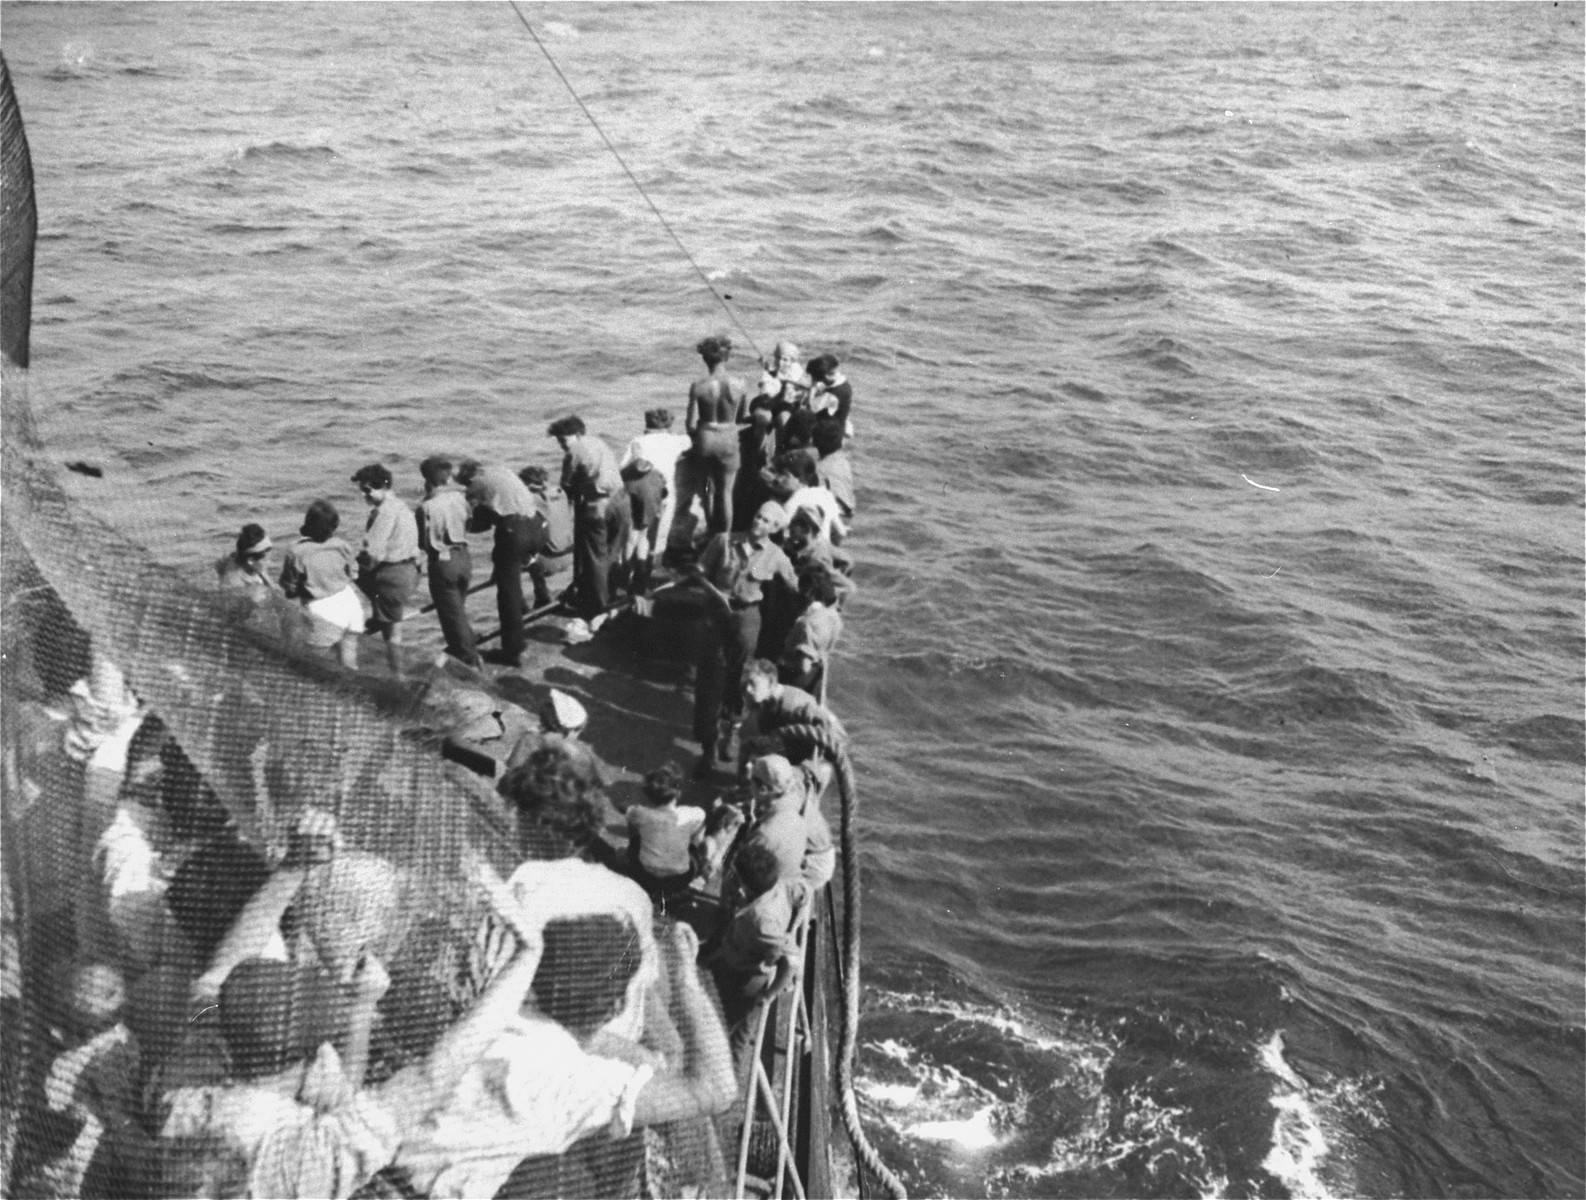 Jewish passengers crowd the bow of the Exodus 1947 as it is towed into the port of Haifa.